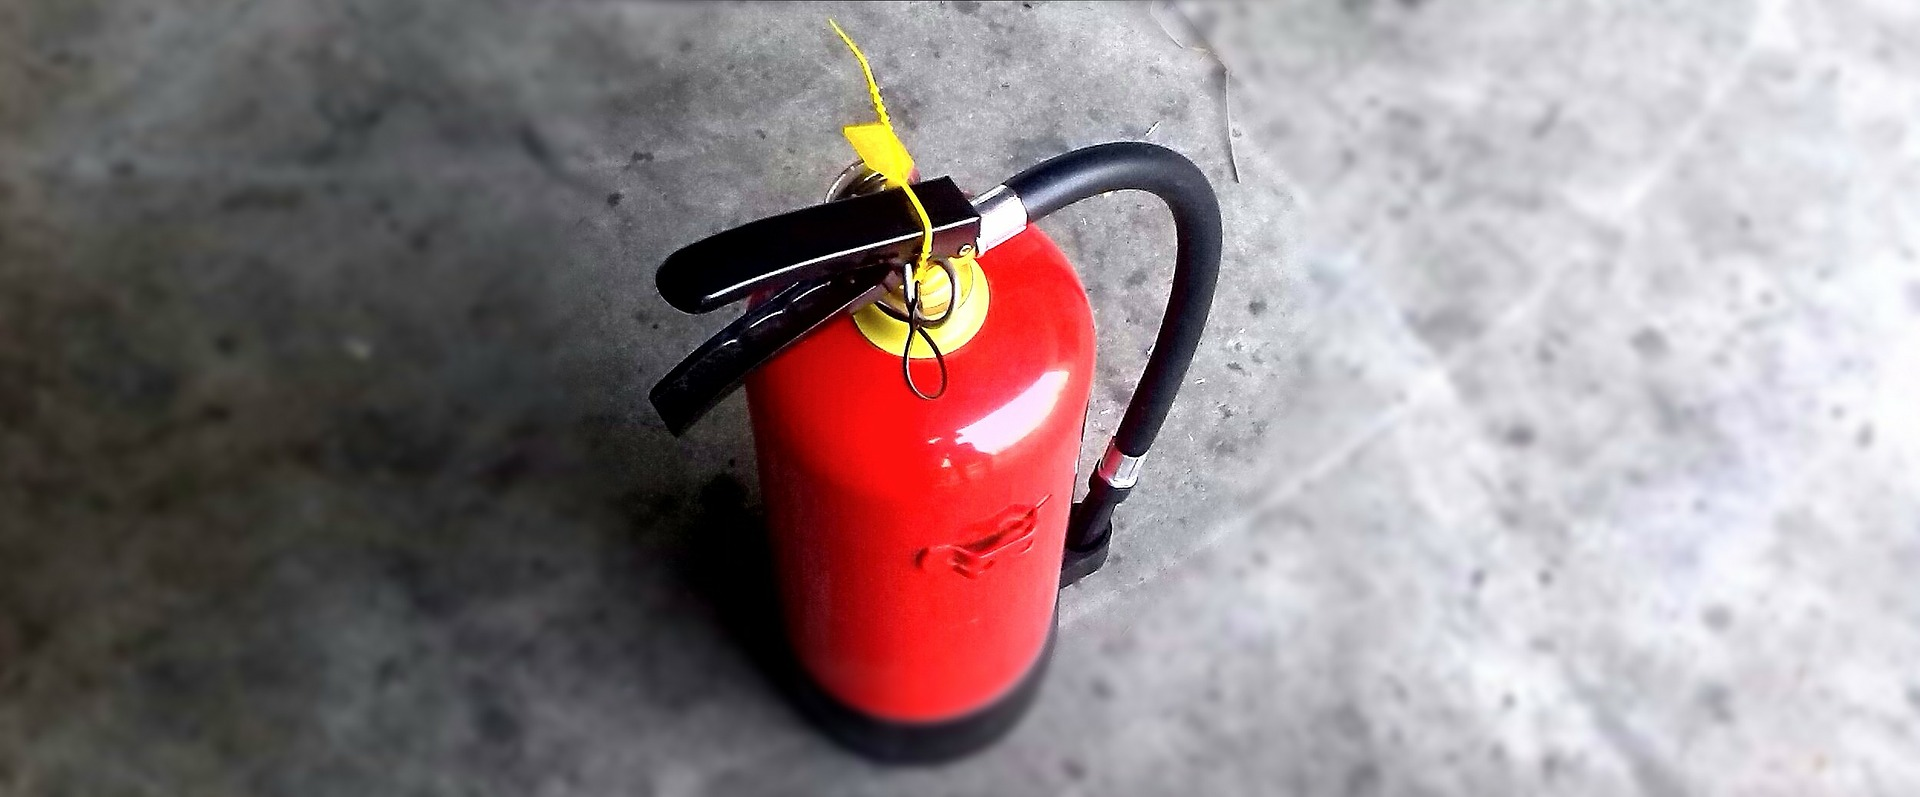 5 Causes of Mobile Home Fires Kids Room Extinguisher